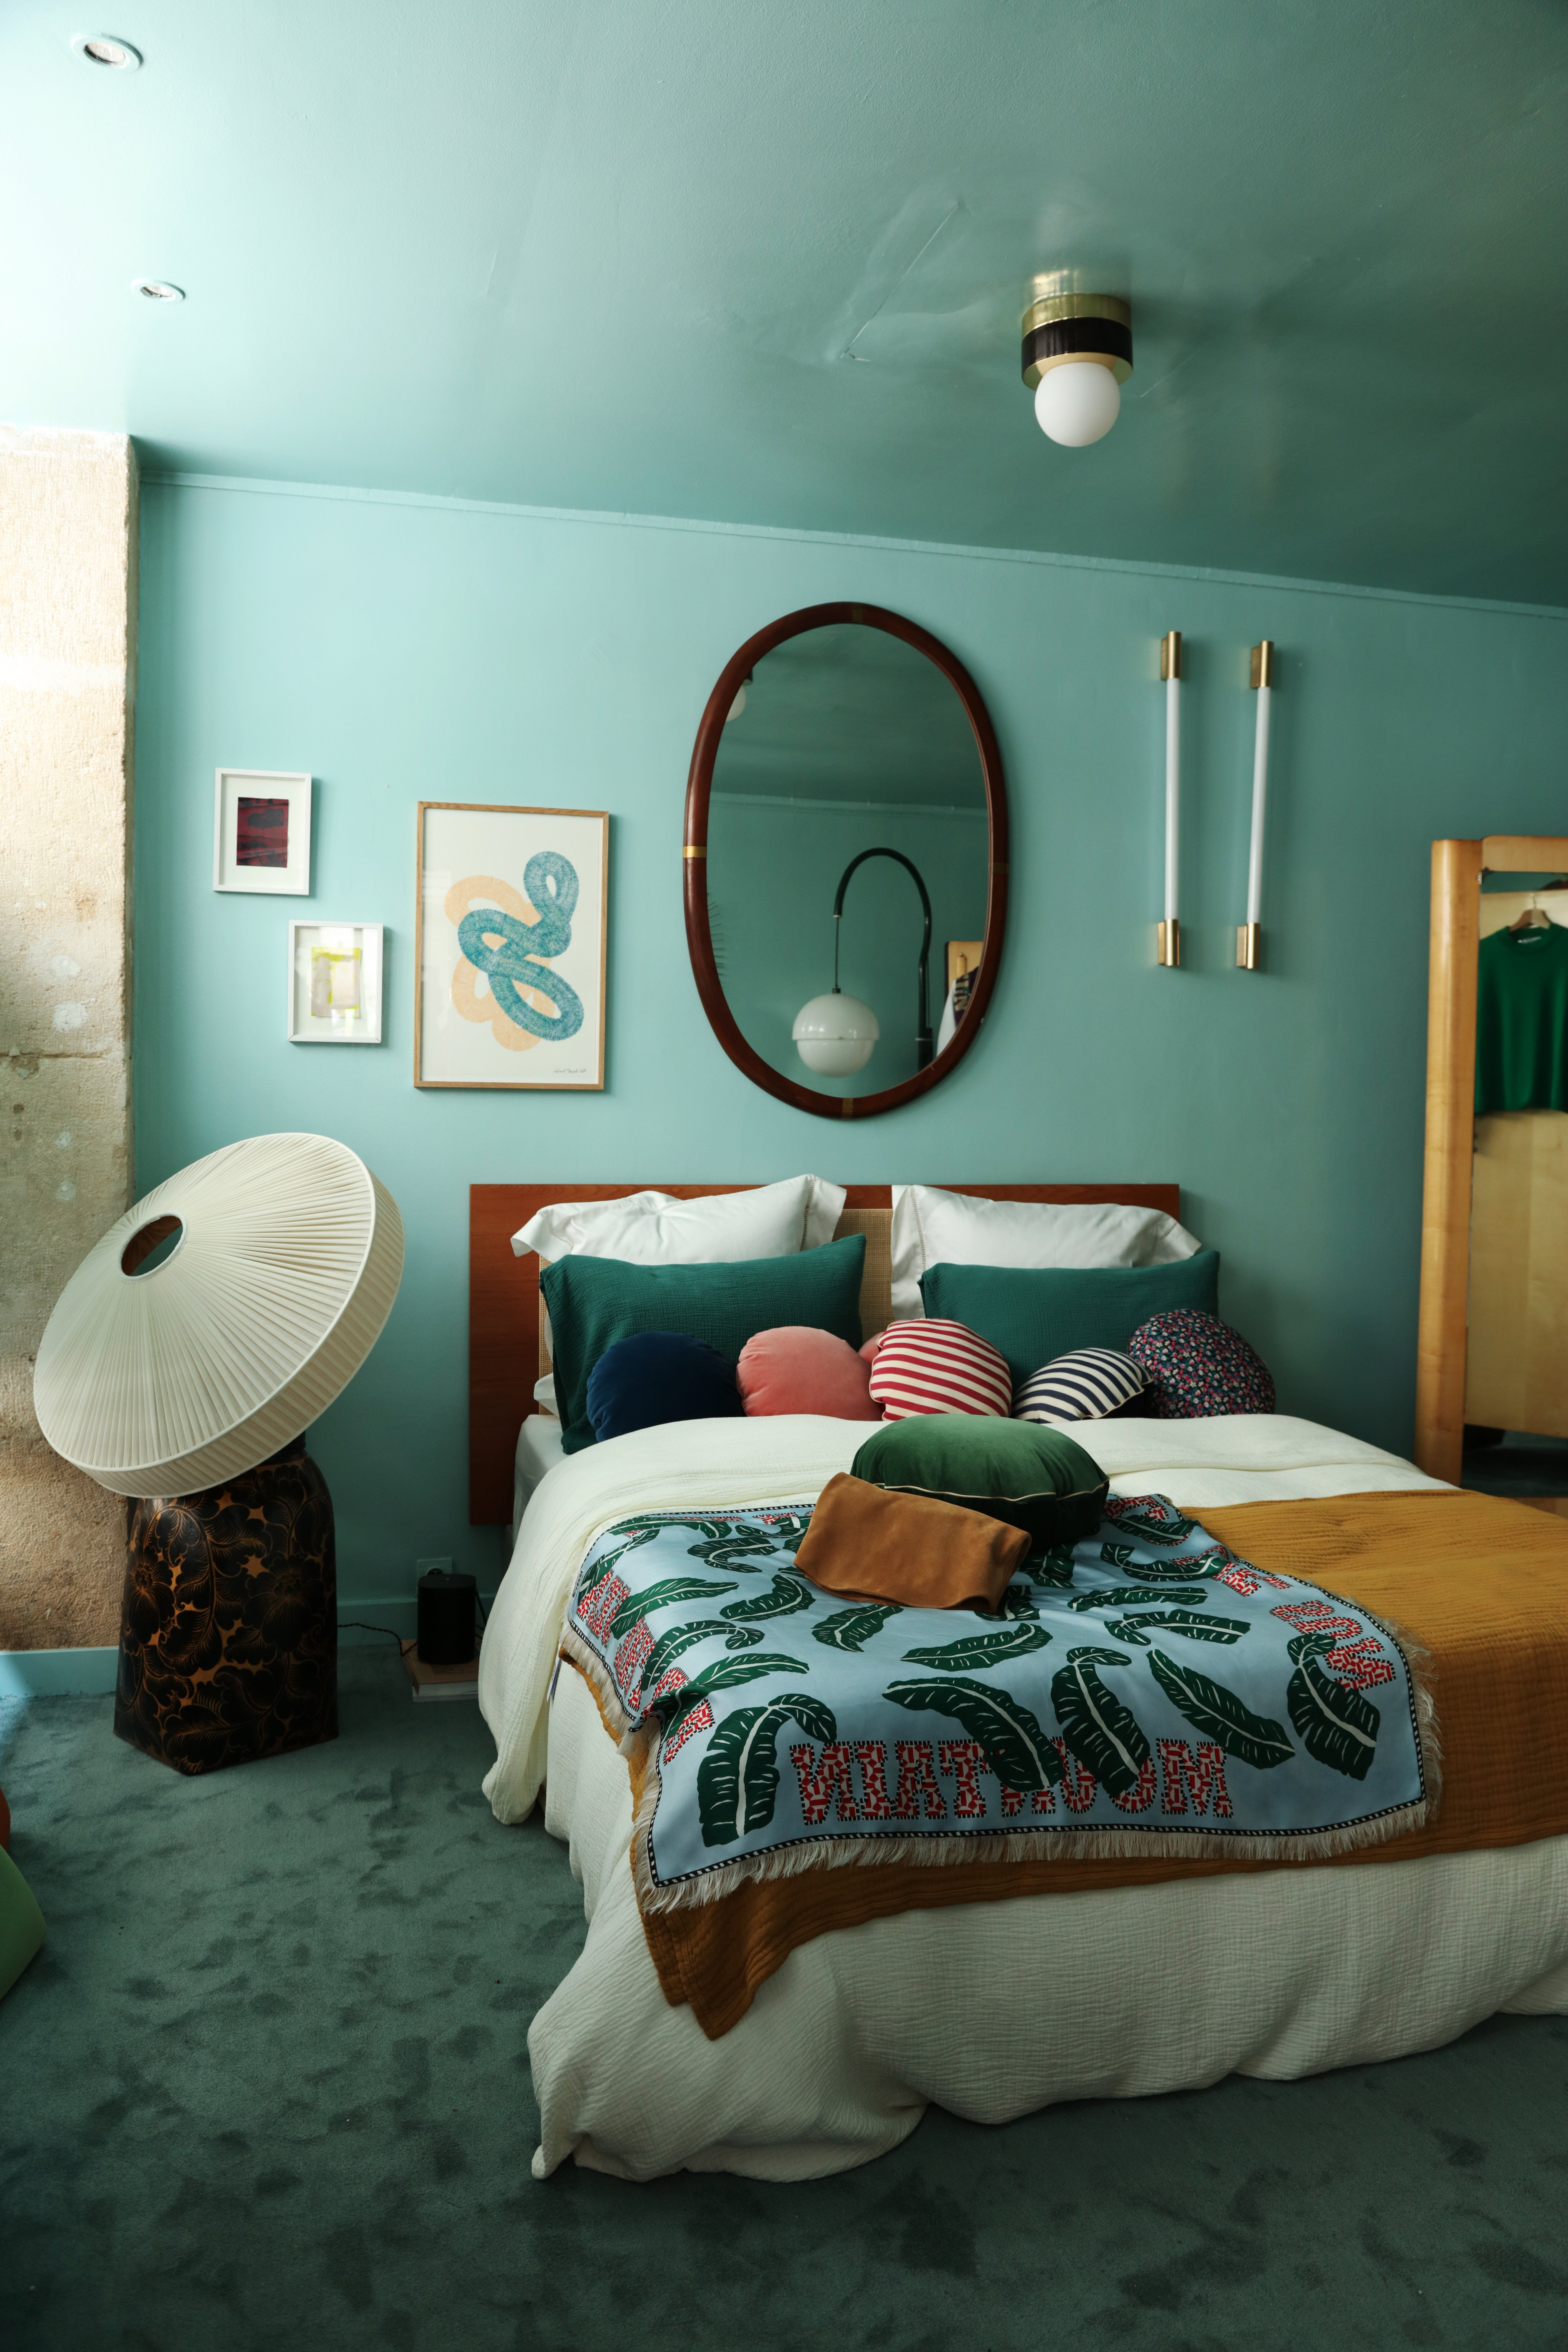 Vertbois X The Socialite Family The Place To Get Inspired C Est Fini The Socialite Family Arranging Bedroom Furniture Eclectic Bedroom Creative Home Decor